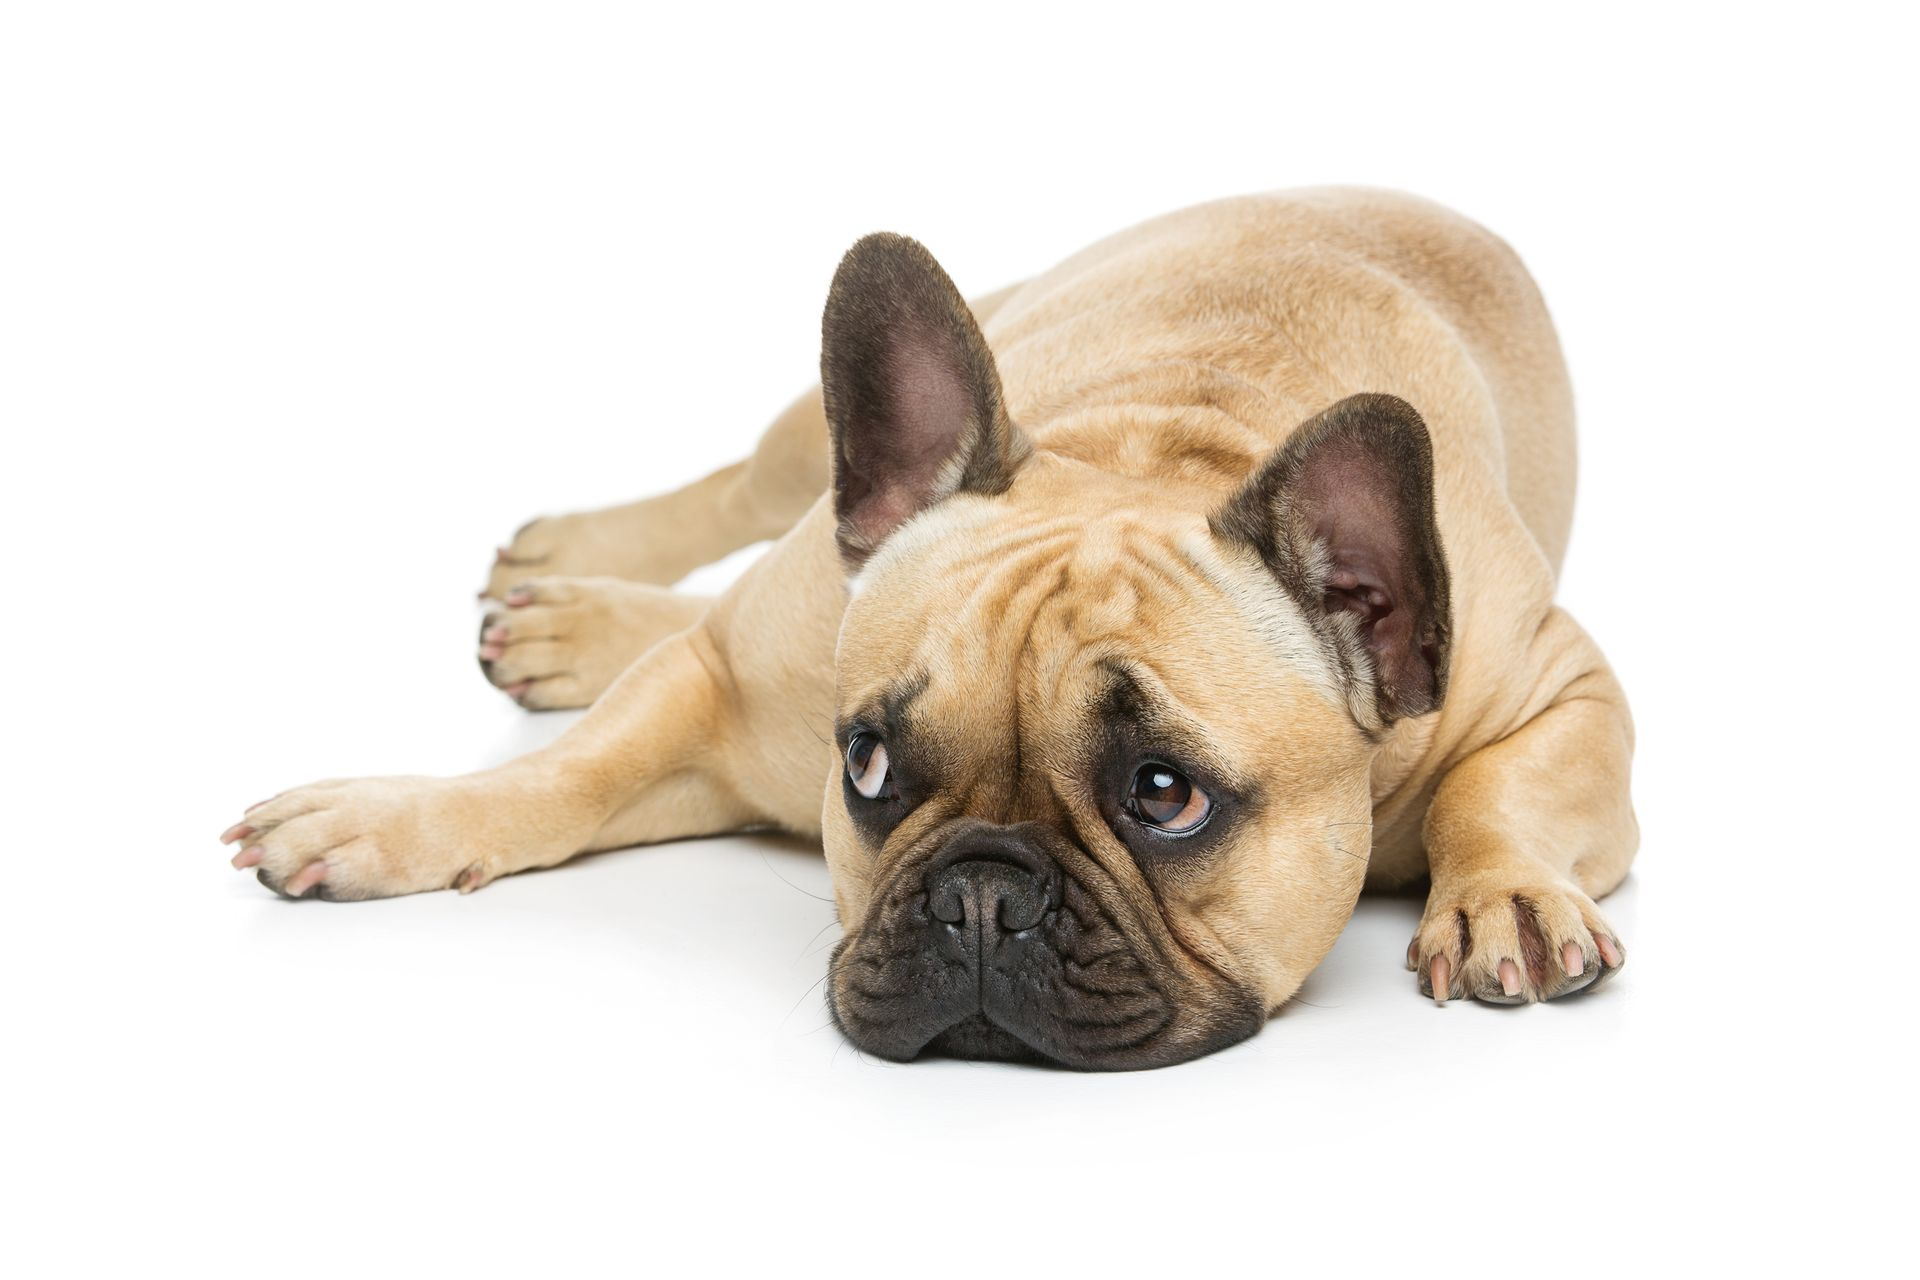 A prone French Bulldog poses for the camera.